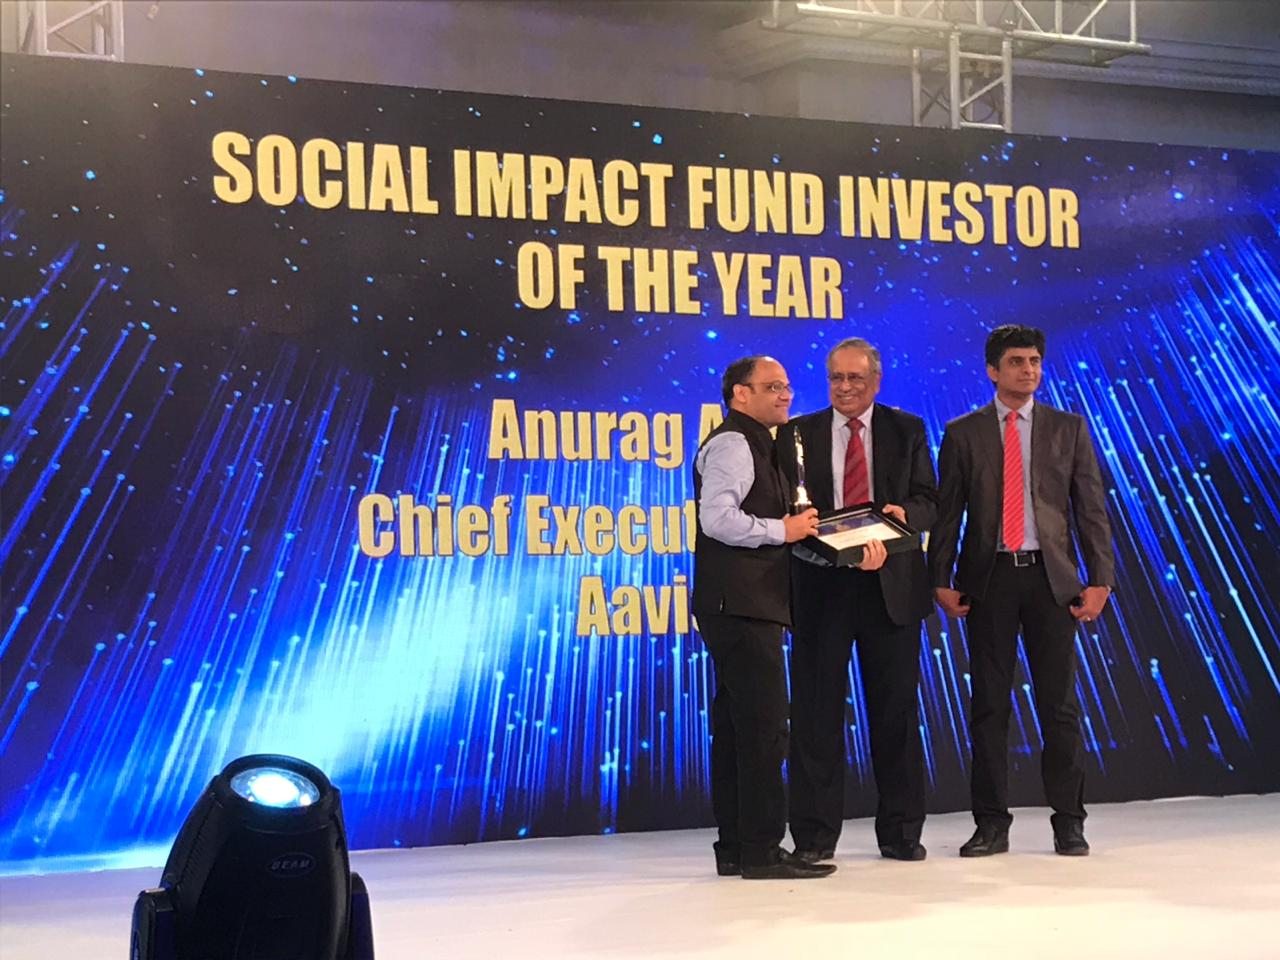 Social impact creator of the year: Anurag Agrawal, CEO of Aavishkar | Founded in 2001, the venture fund backs entrepreneurs in pockets in India that are underserved by financial institutions. By providing access to capital, Aavishkar helps them build sustainable and scalable enterprises. Over the last decade, Aavishkar has established a successful track record with over $155 million under management and a diverse portfolio of high impact businesses at various levels of growth. It has set itself the goal of investing in 300 startups in the next 10 years, coming to the aid of entrepreneurial talent in low income countries. Aavishkar aims to raise $1 billion in the coming decade. (Image: Moneycontrol)